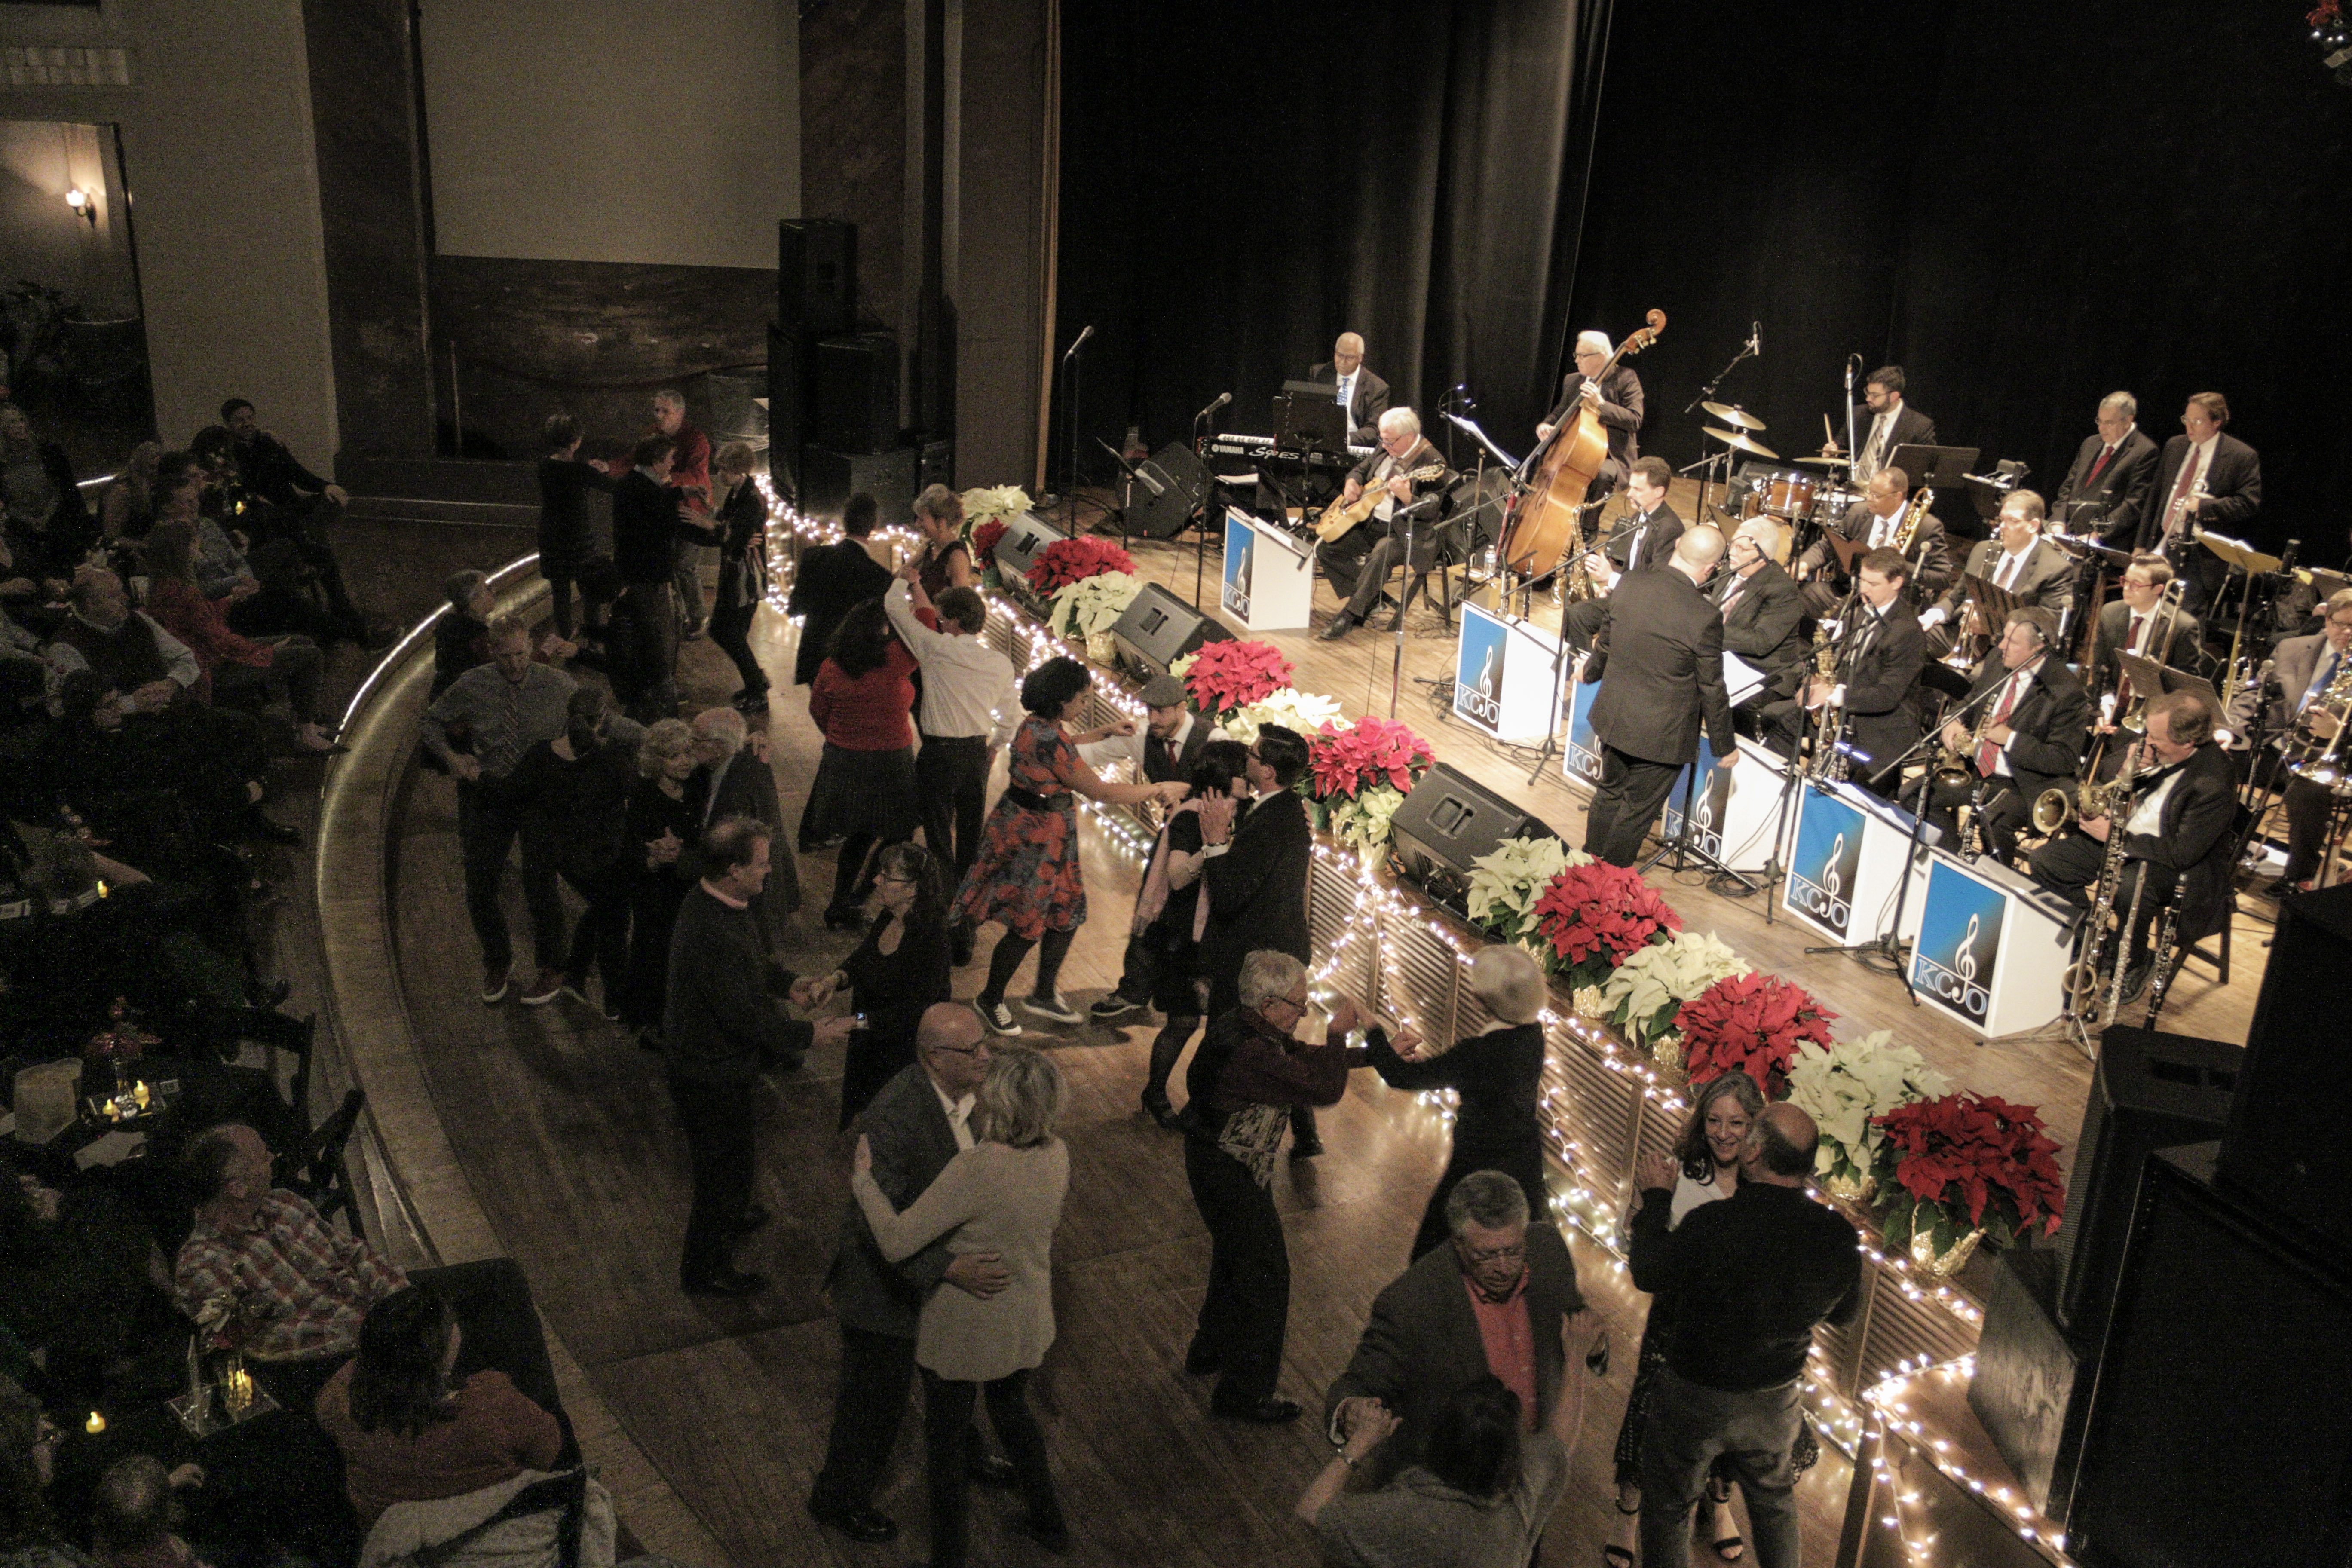 The crowd hits the dance floor during a rousing big band tune from the Kansas City Jazz Orchestra.